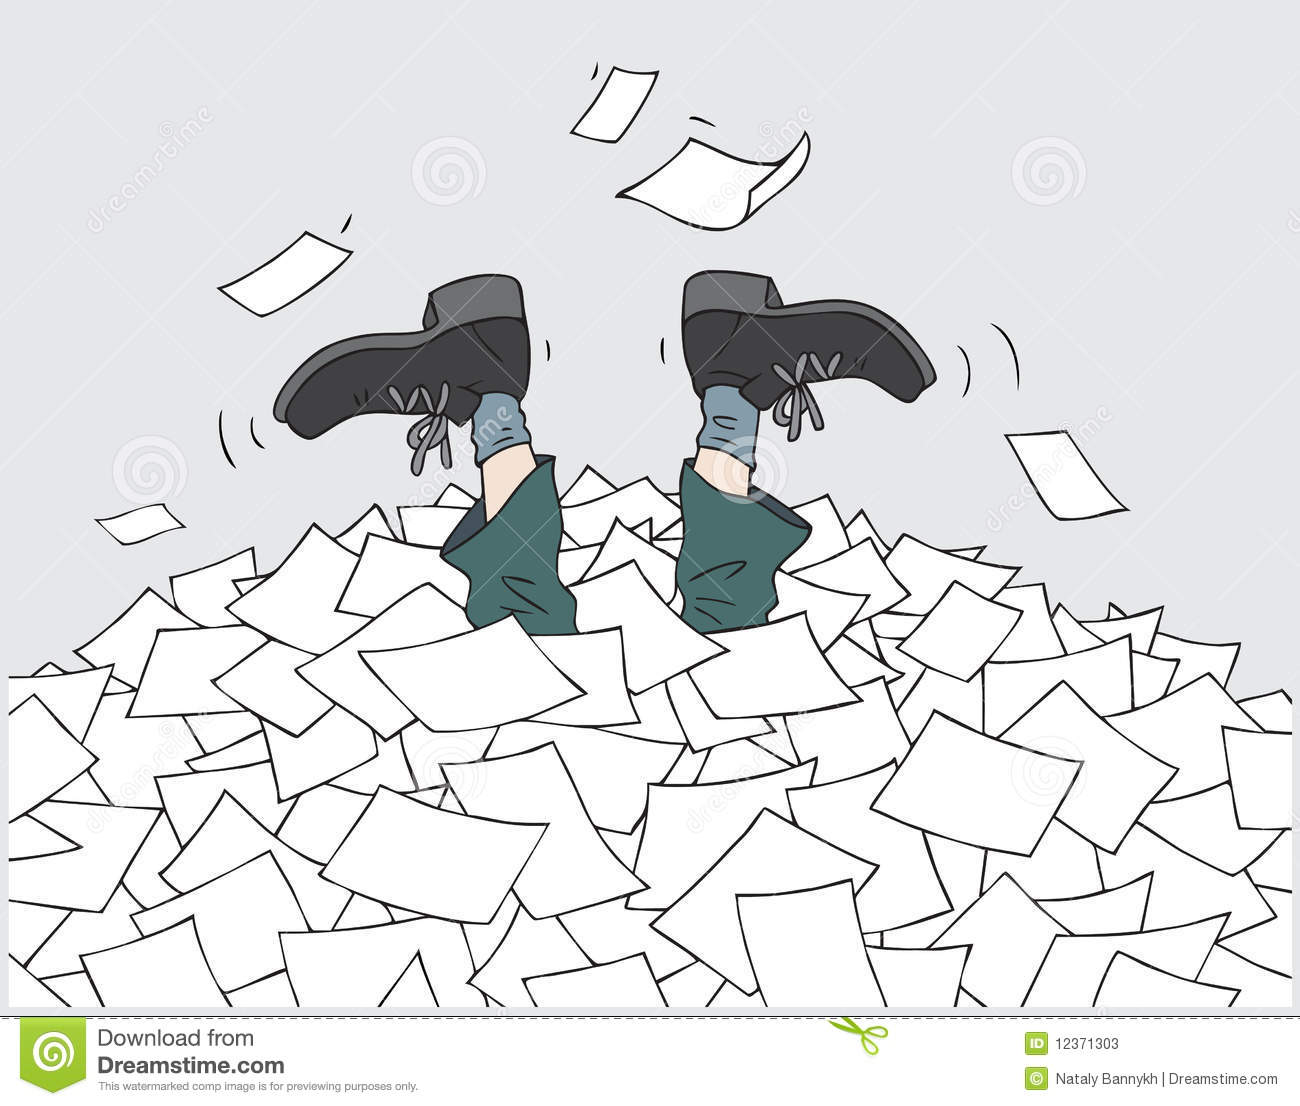 In the heap of documentation